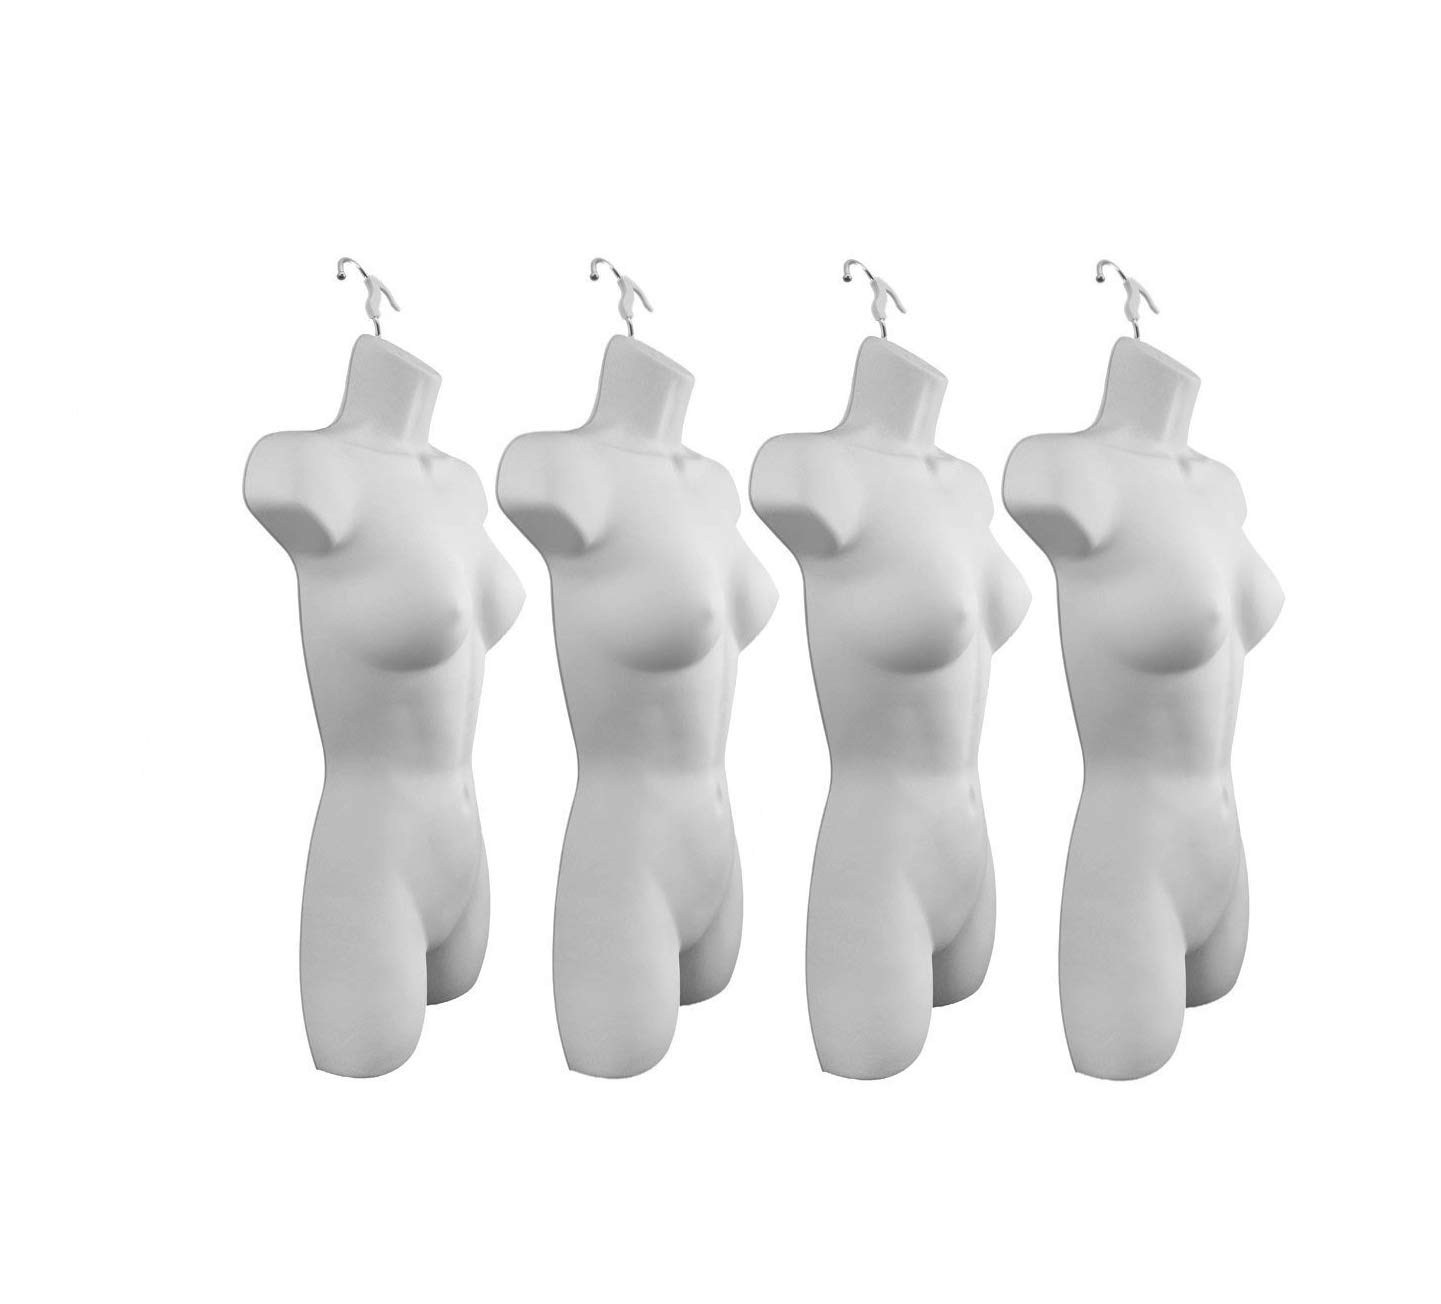 Only Hangers Set of Four Women's Torso Female Plastic Hanging Mannequin Body Forms in White - Pack of (4) #8081WHT (PACK OF 4)